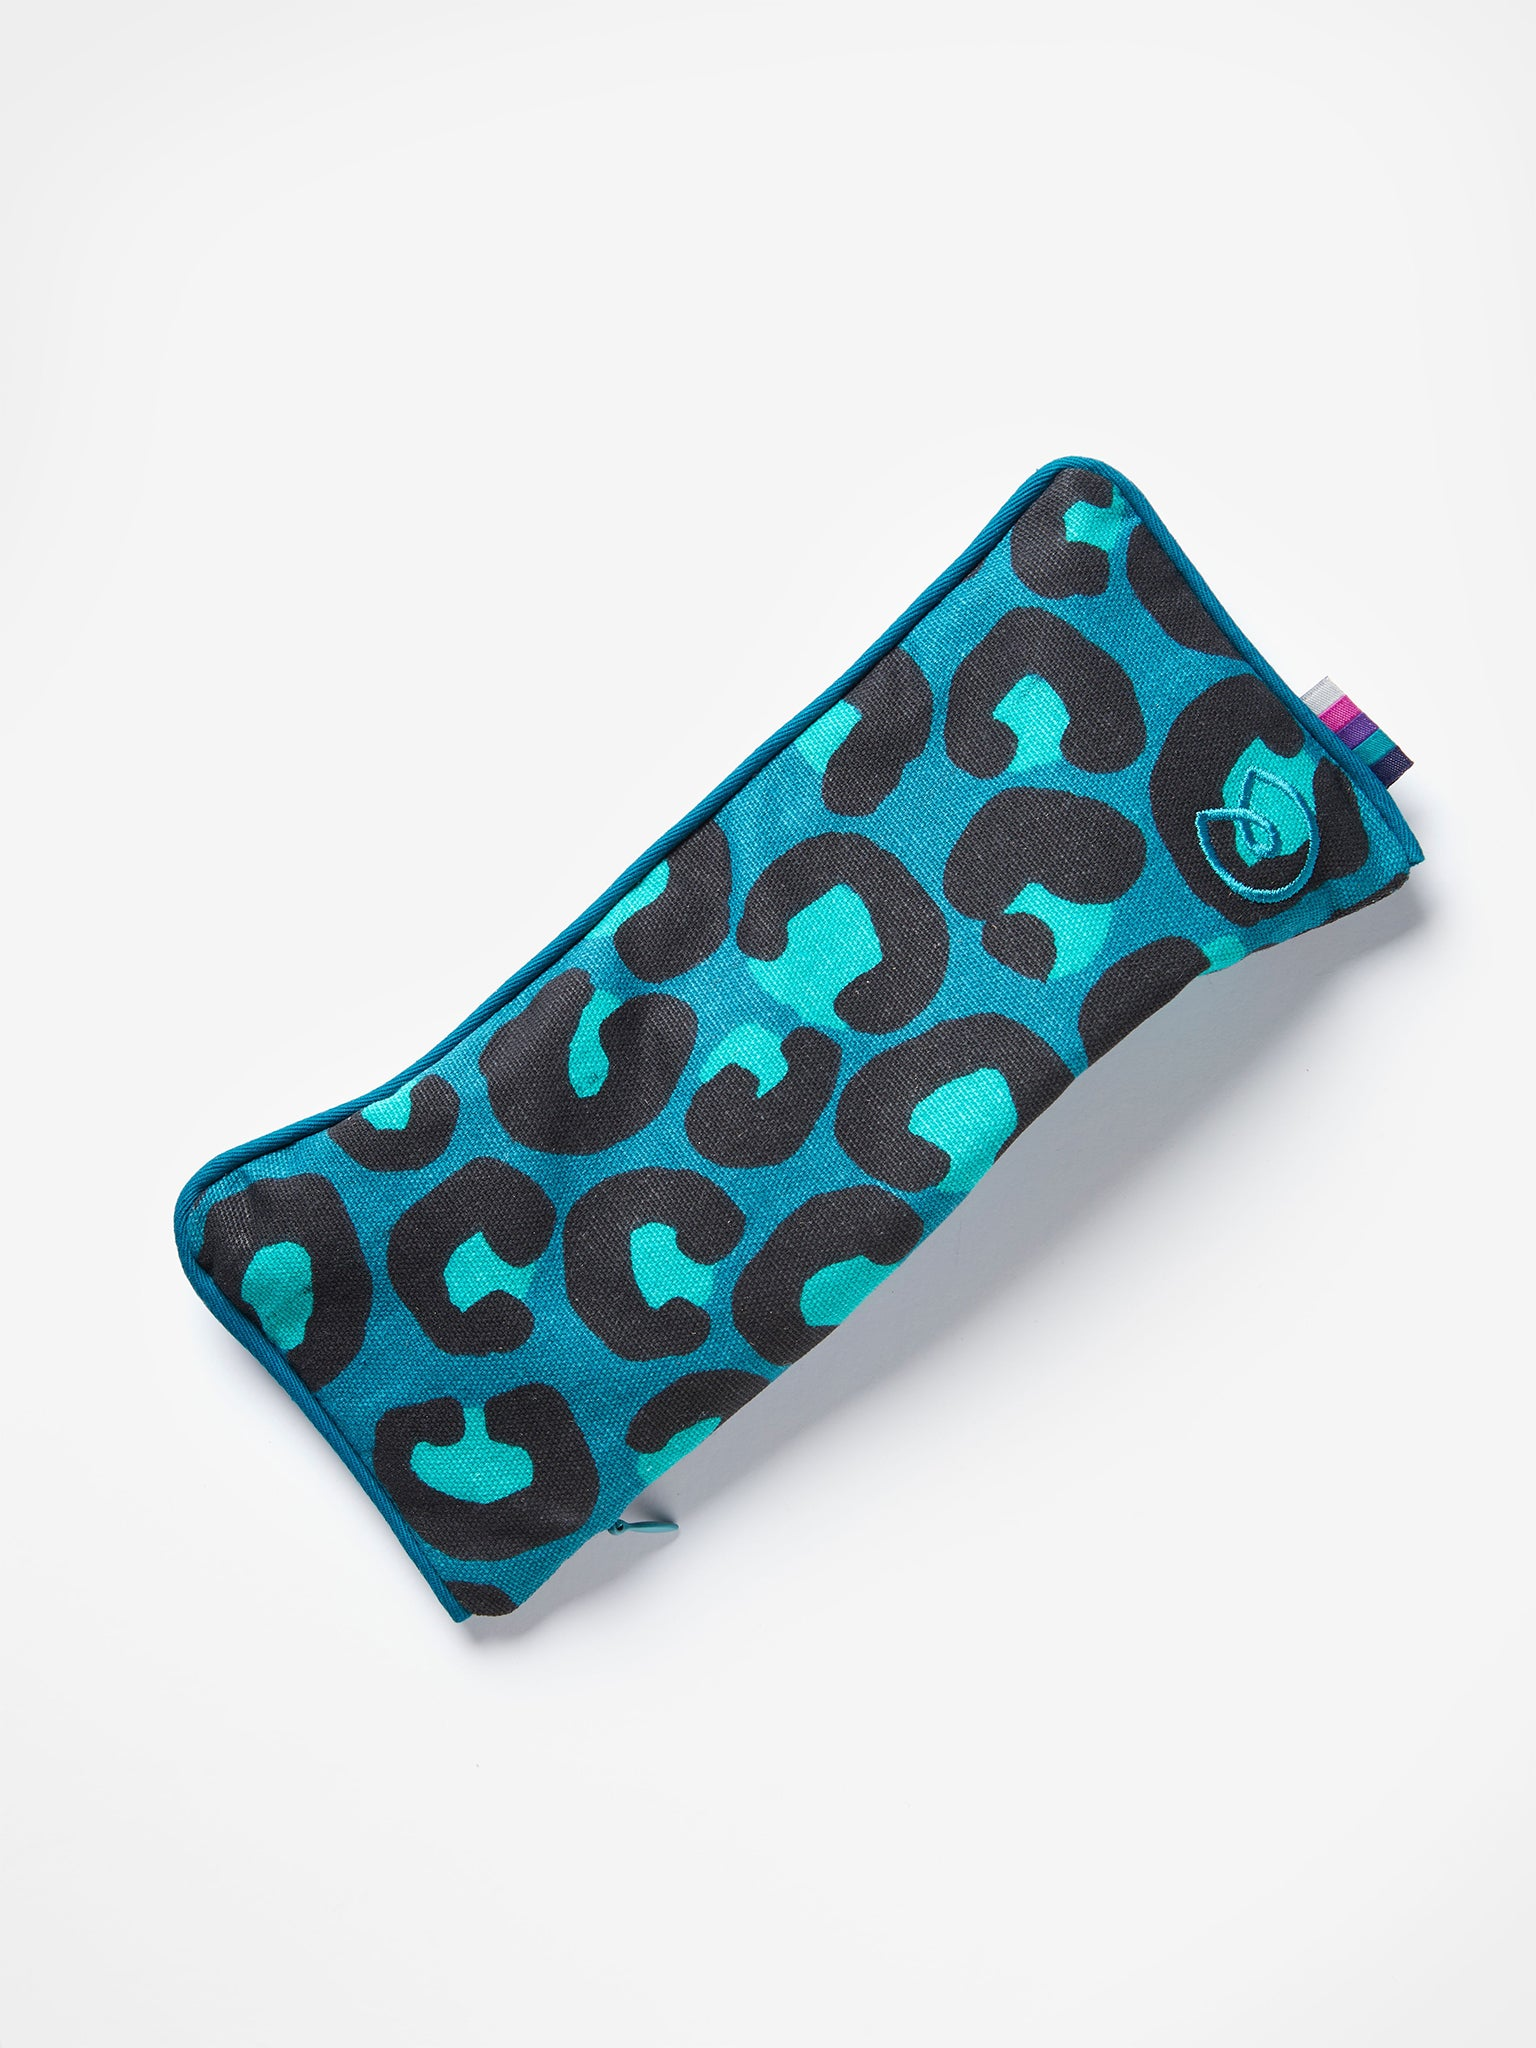 Yogamatters Leopard Print Eye Pillow - Ocean Green